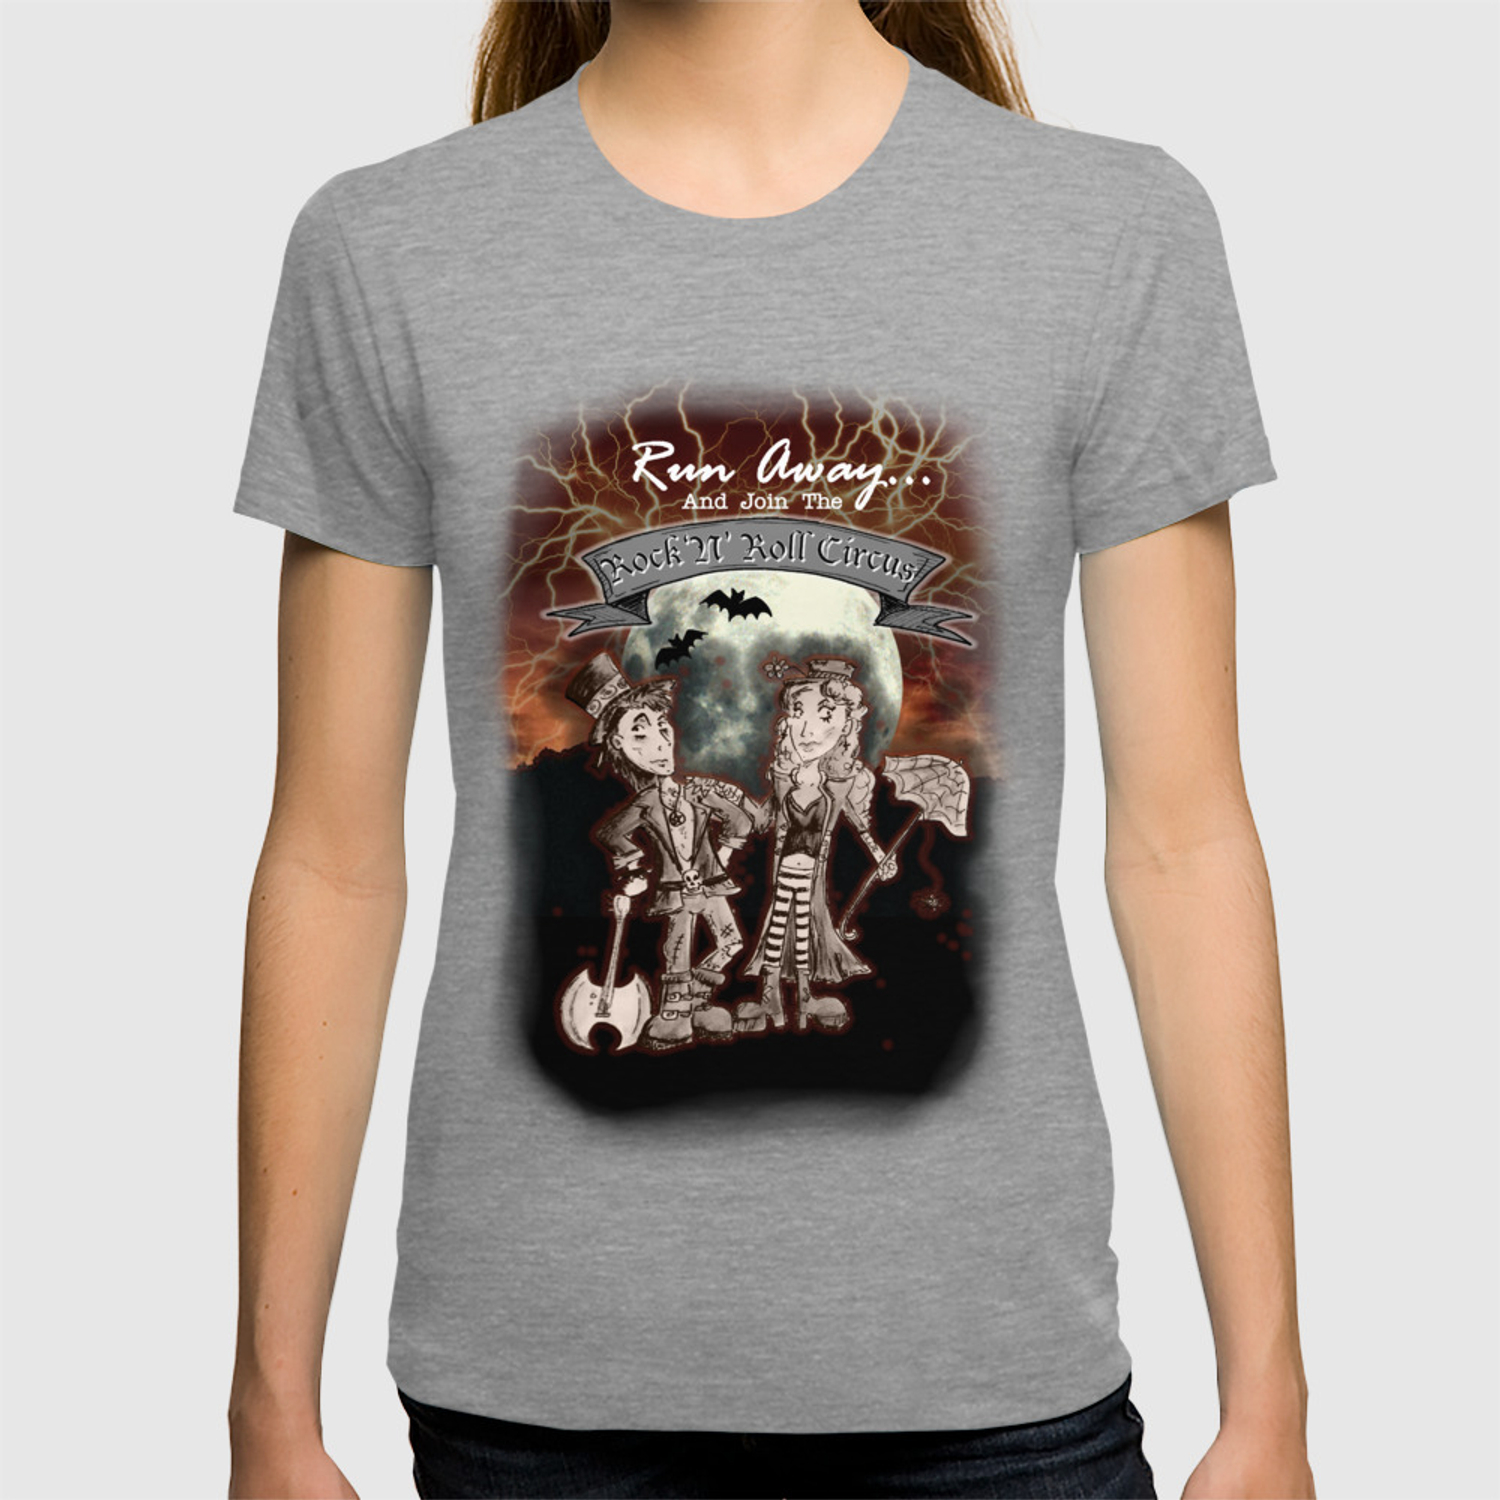 aa142011 Rock 'N' Roll Circus T-shirt by melissamorrison | Society6